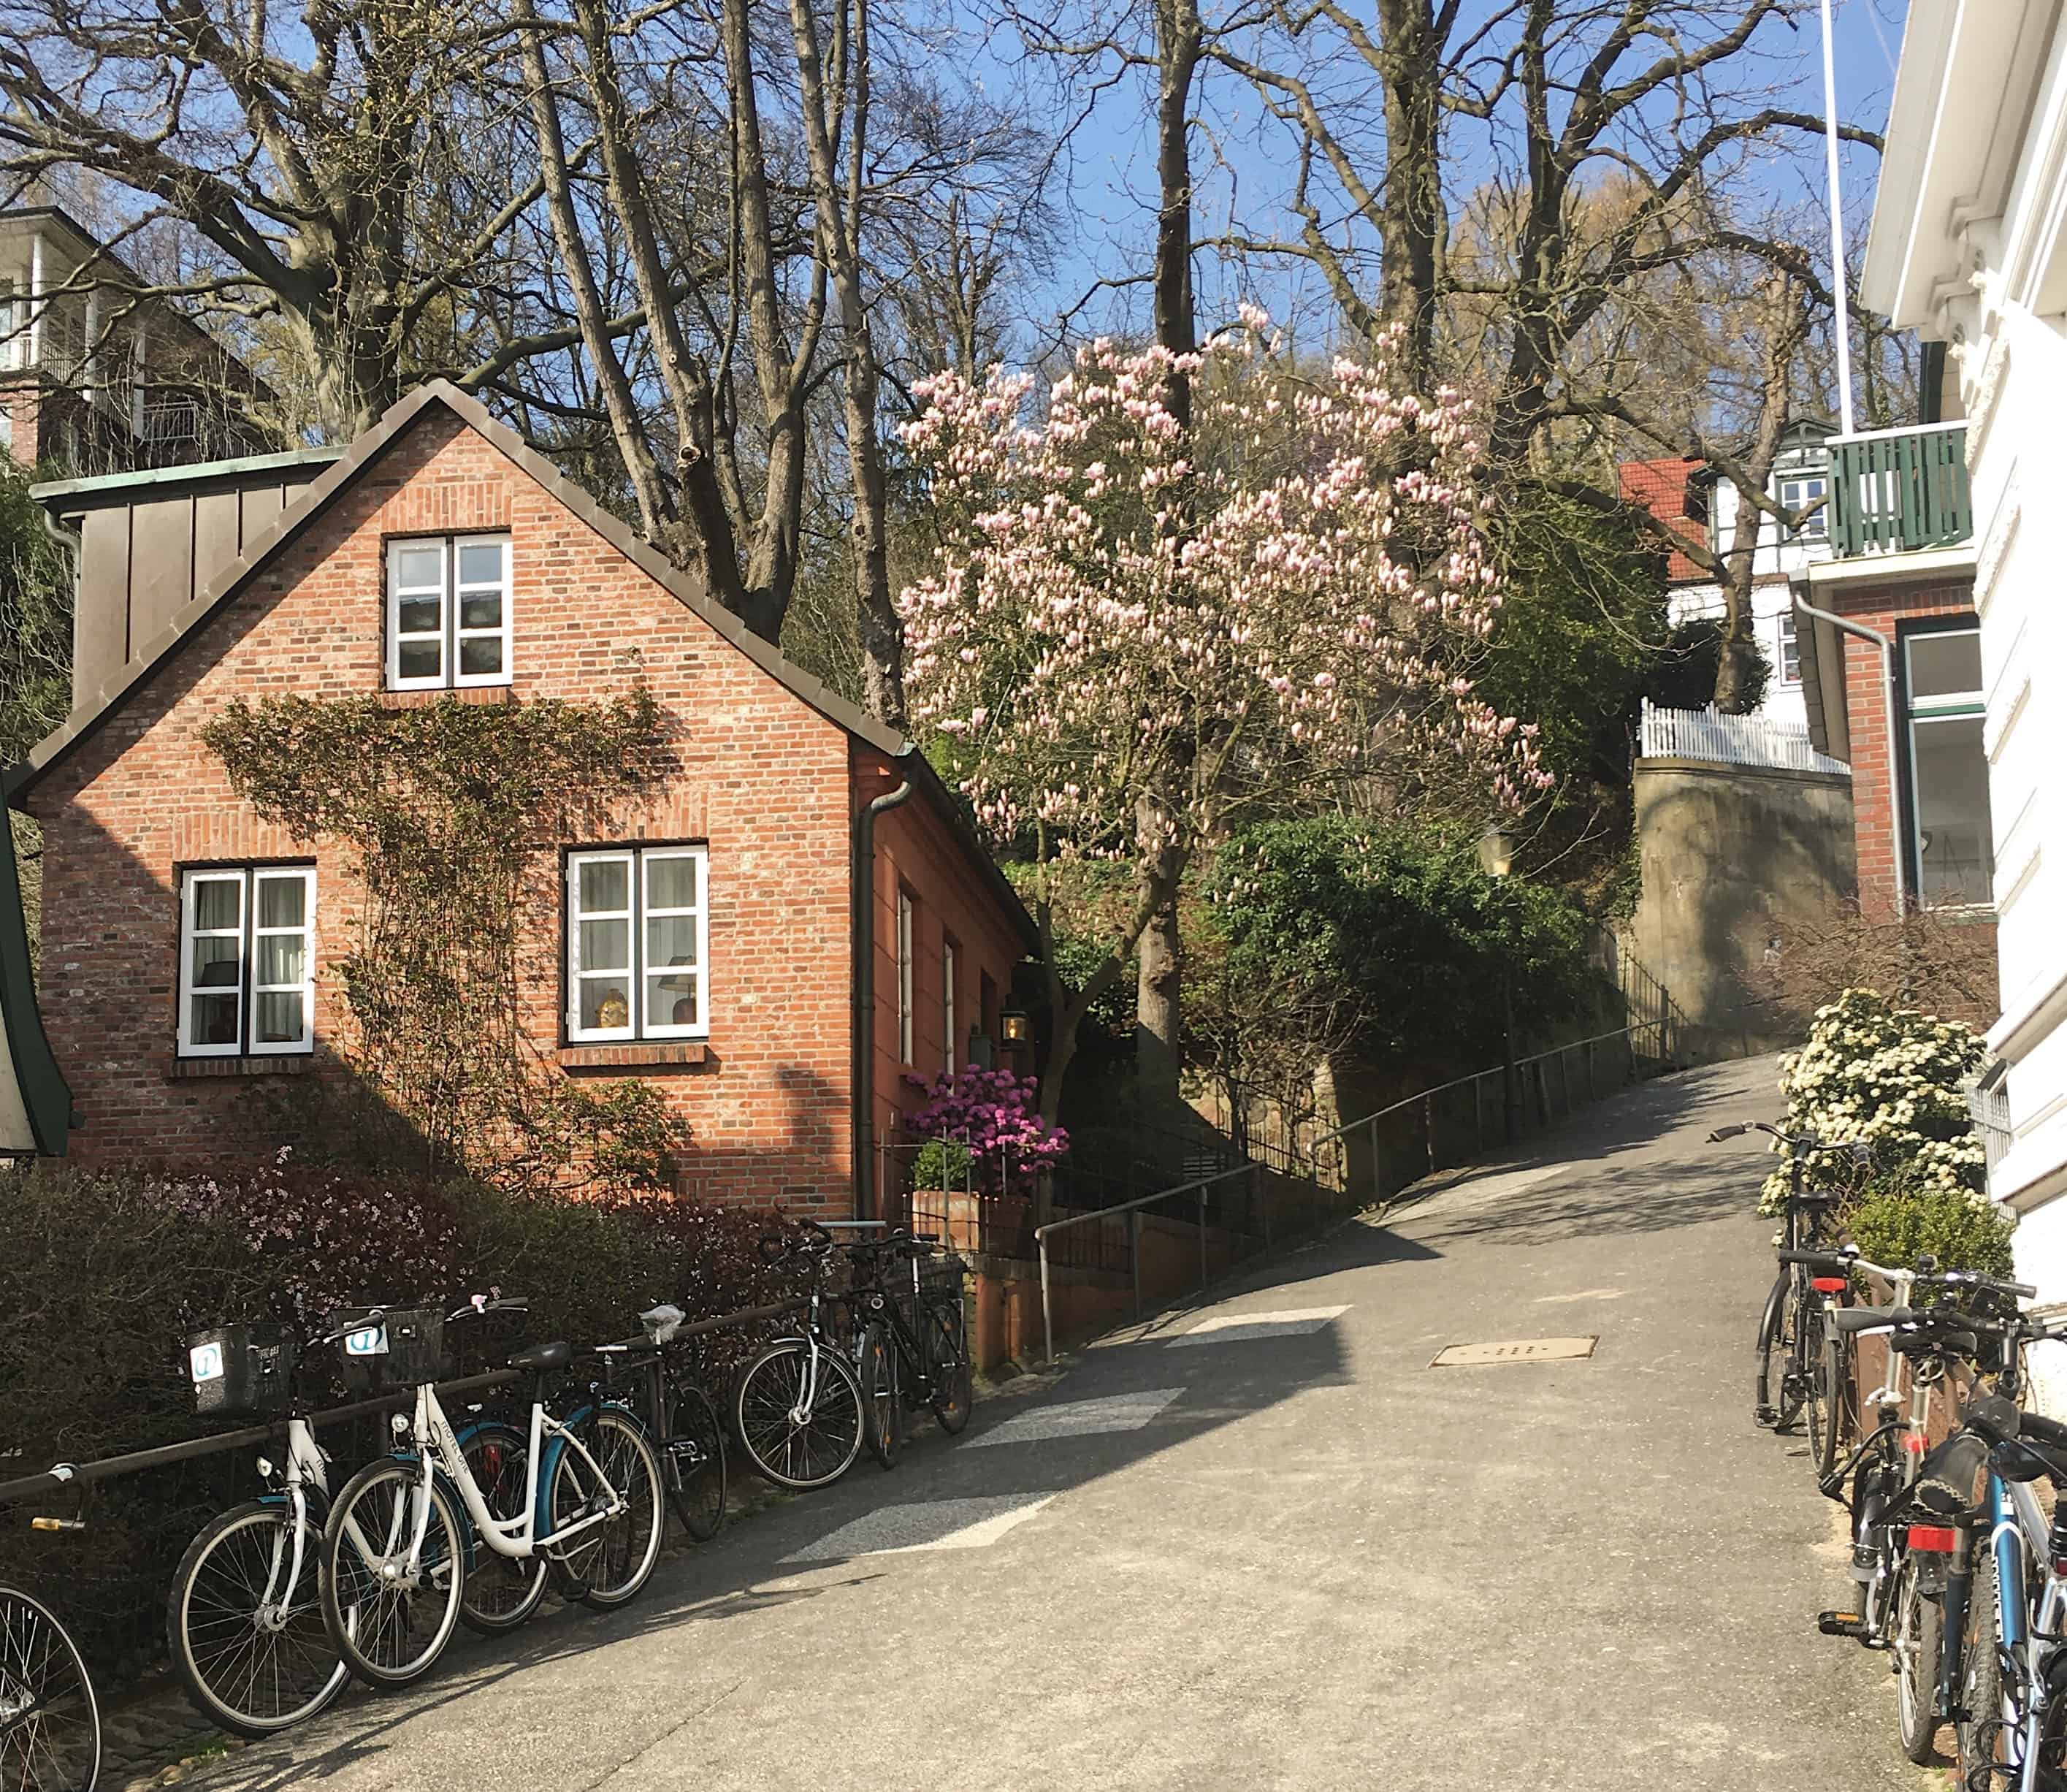 A brick building and bikes in the Othmarschen area on a sunny spring day in Hamburg, Germany